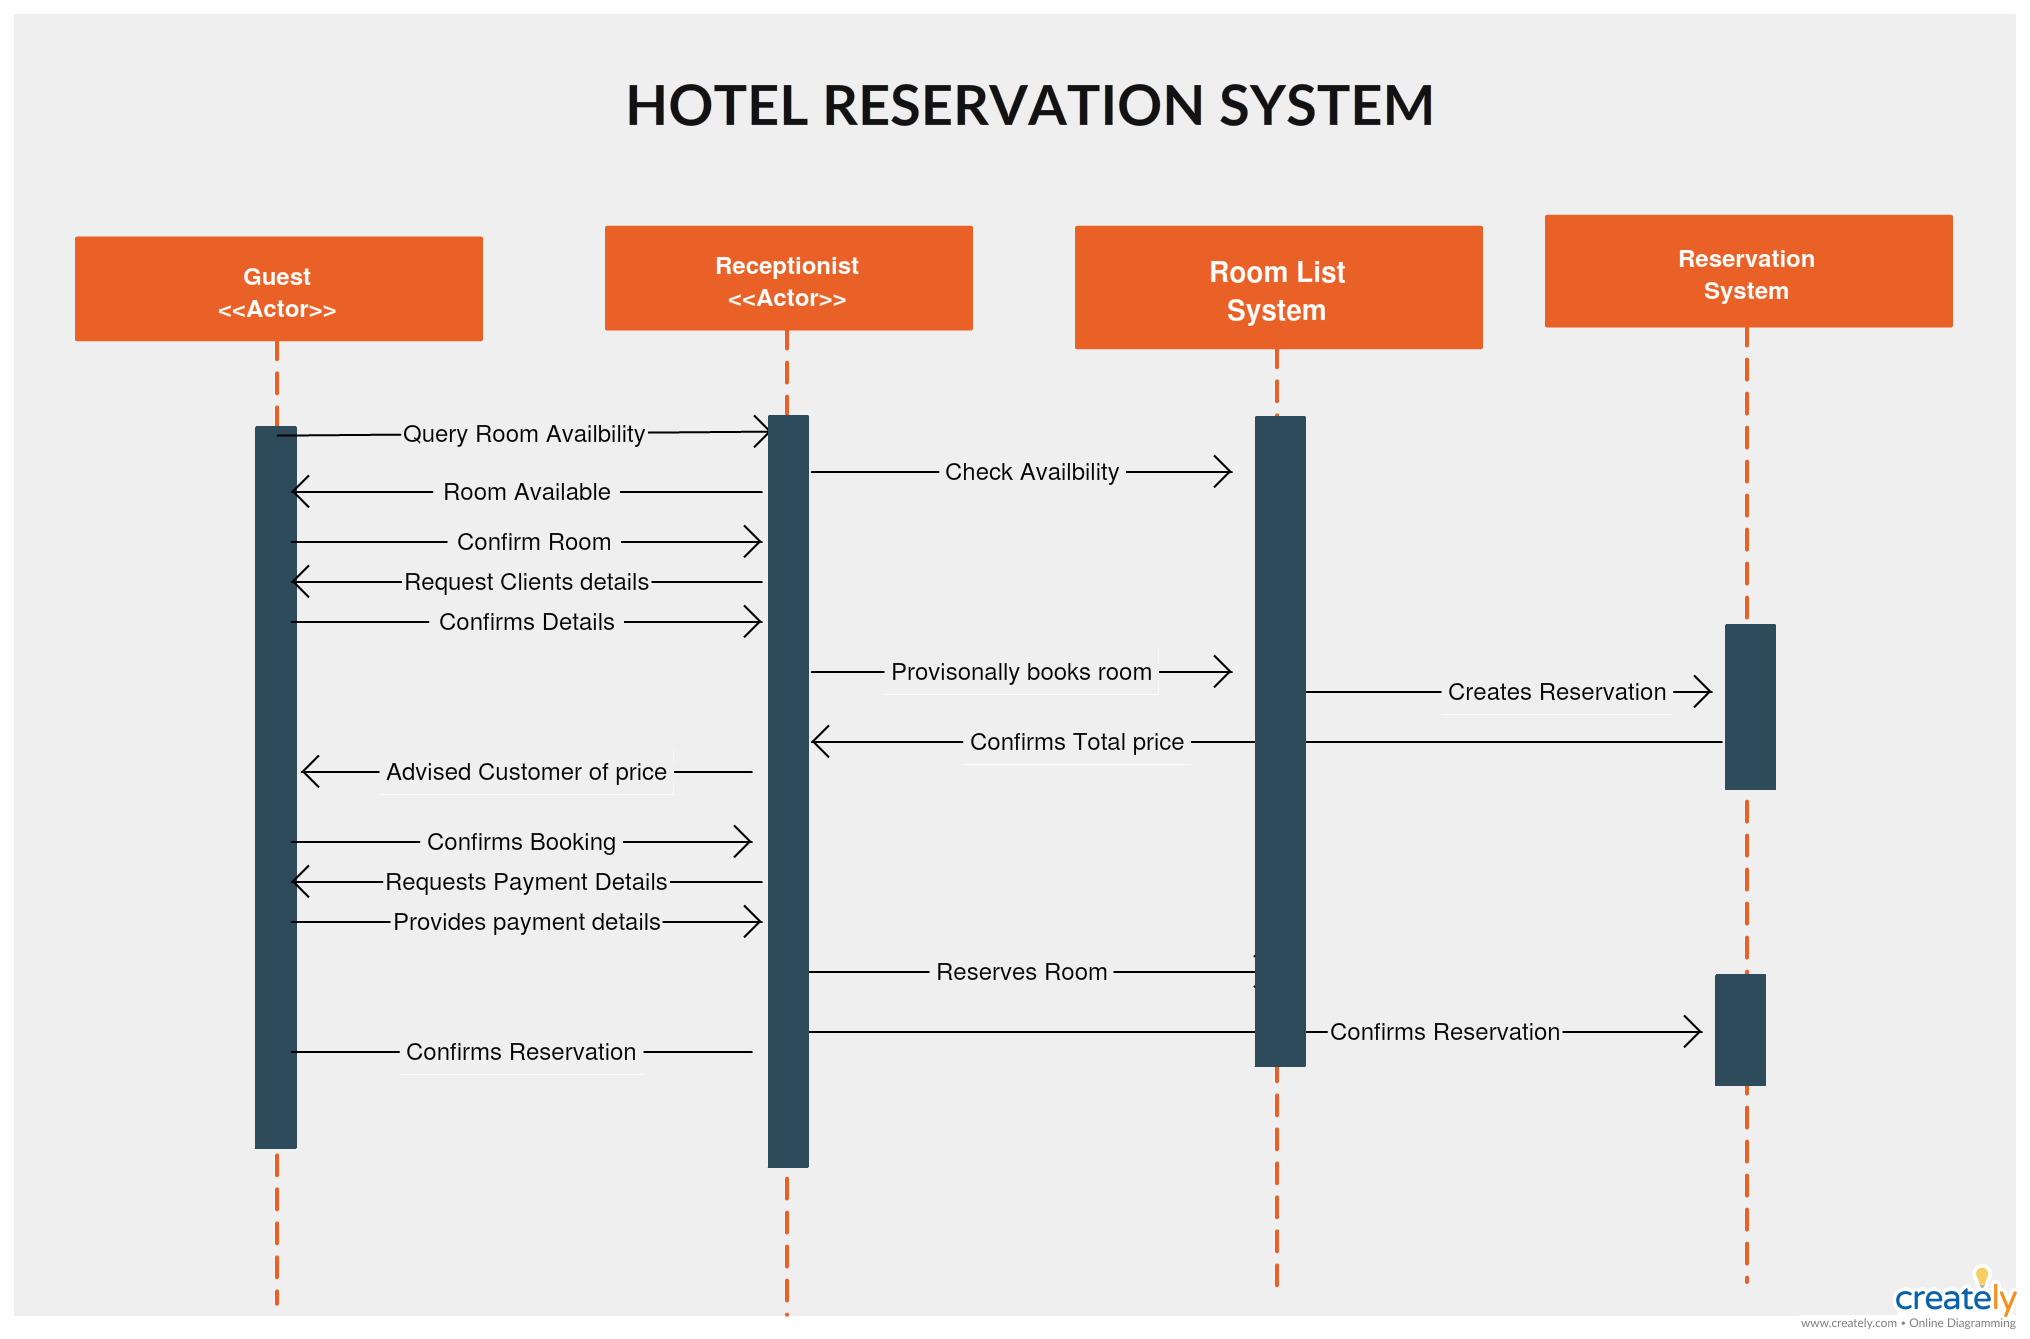 Sequence Diagram For Hotel Reservation System Yamaha G29 Gas Golf Cart Wiring Great Visual Illustration Of You Can Use This Template And Implement Your